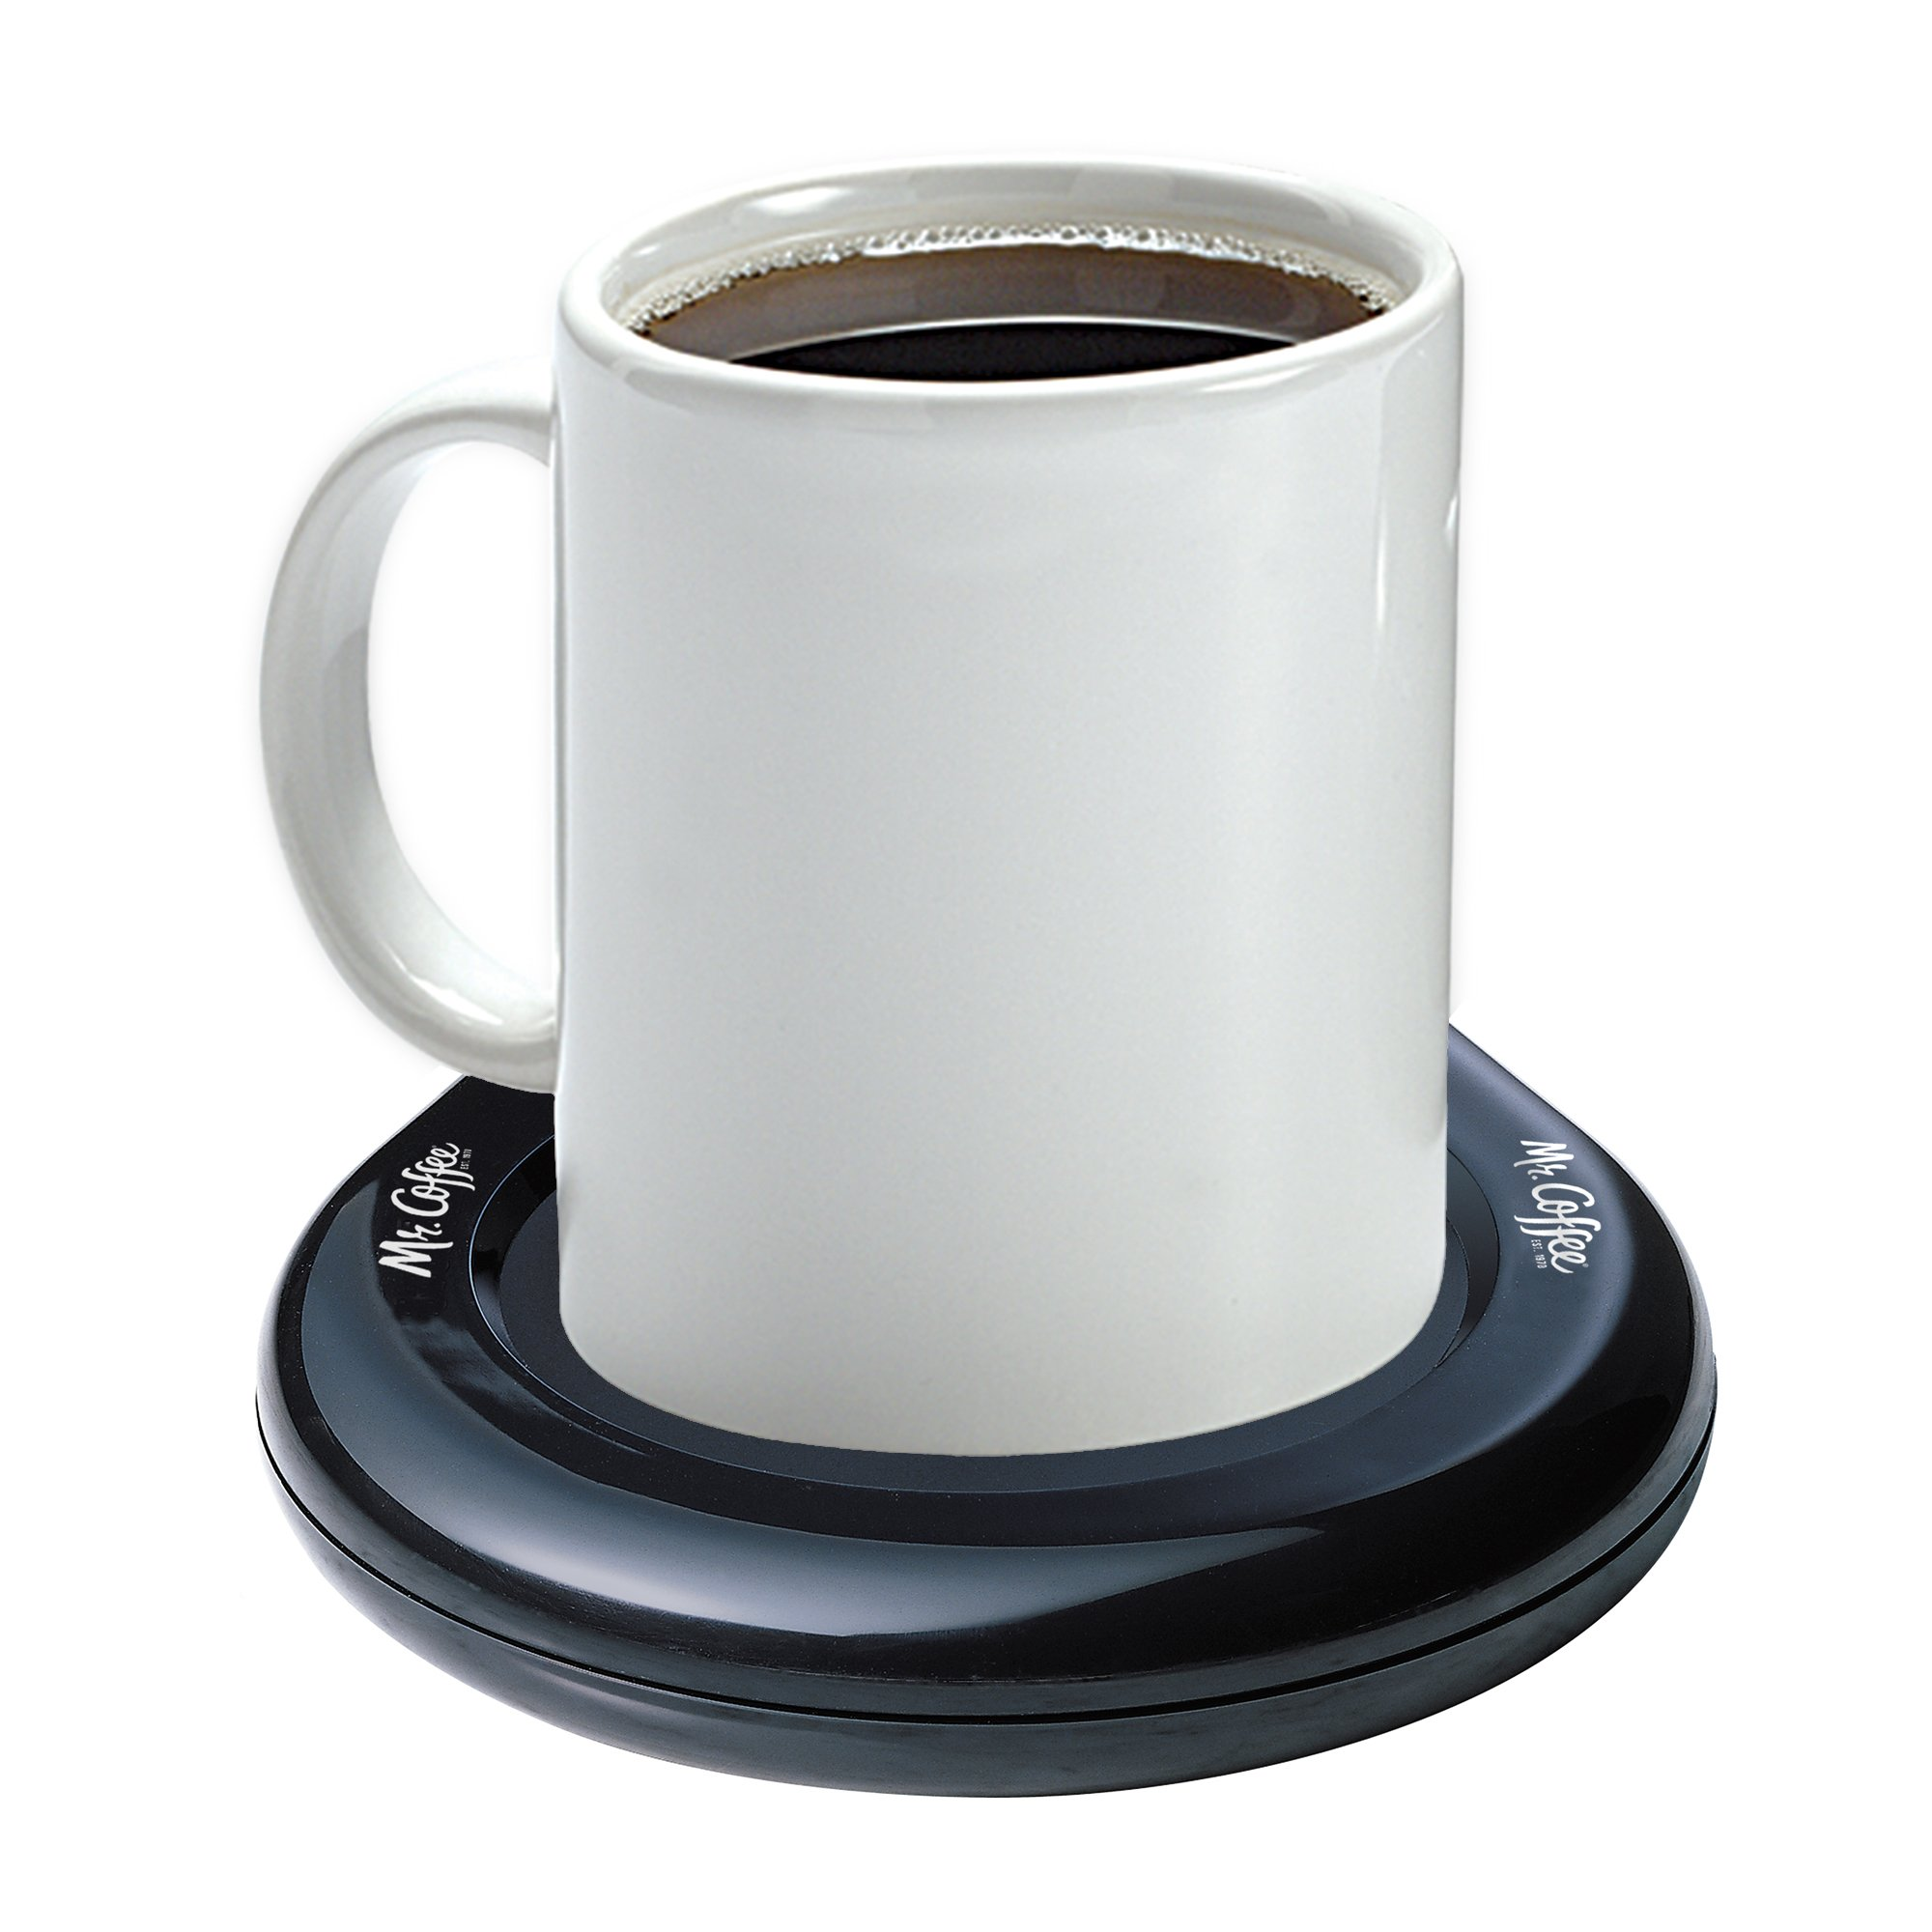 Mr. Coffee Mug Warmer for Office/Home Use, MWBLKPDQ-RB by Mr. Coffee (Image #2)